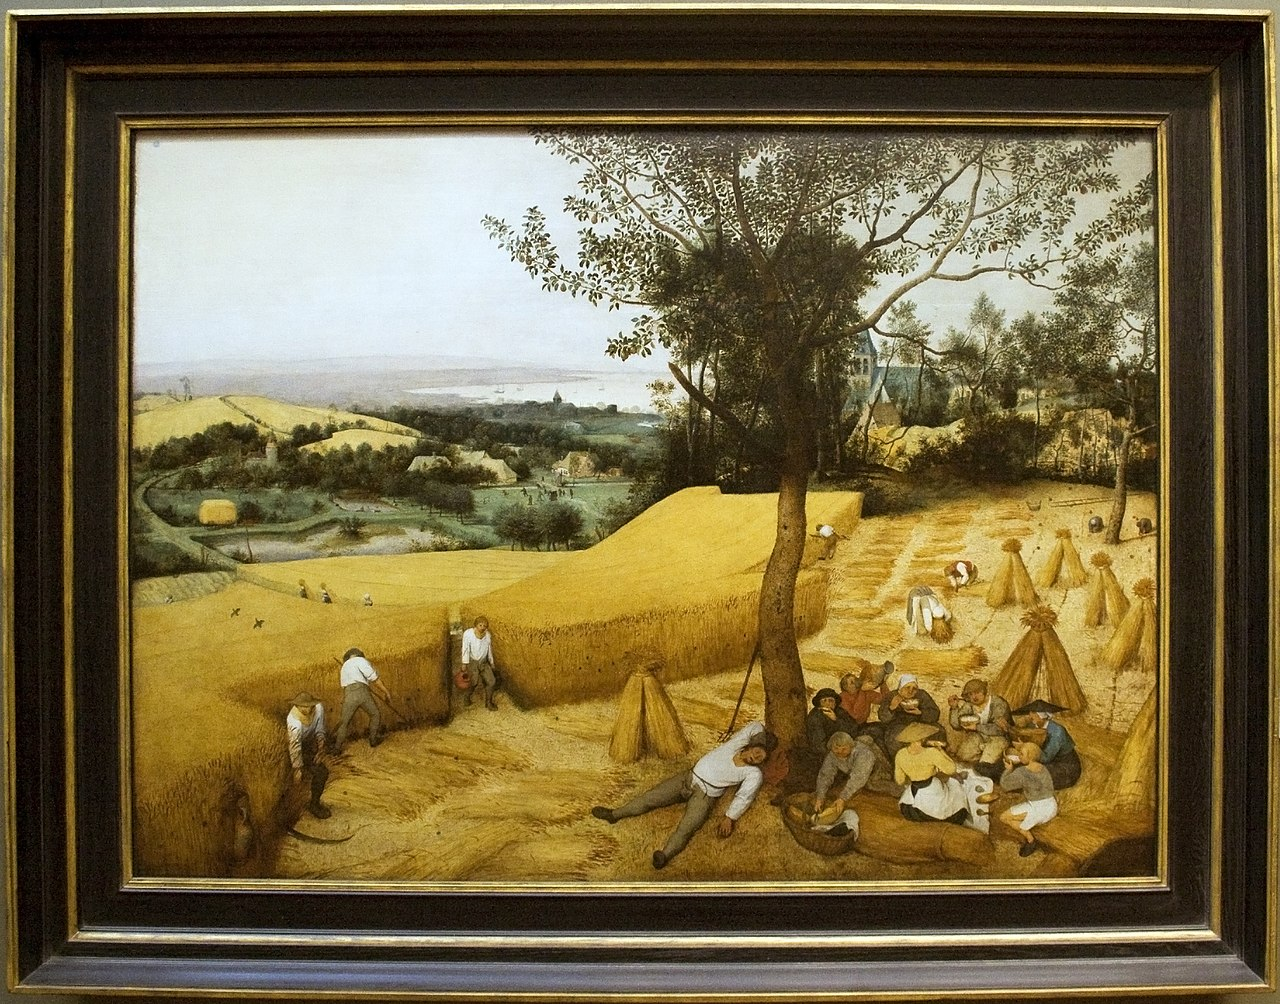 Painting Frames File The Harvesters Painting By Brugel With Frame Jpg